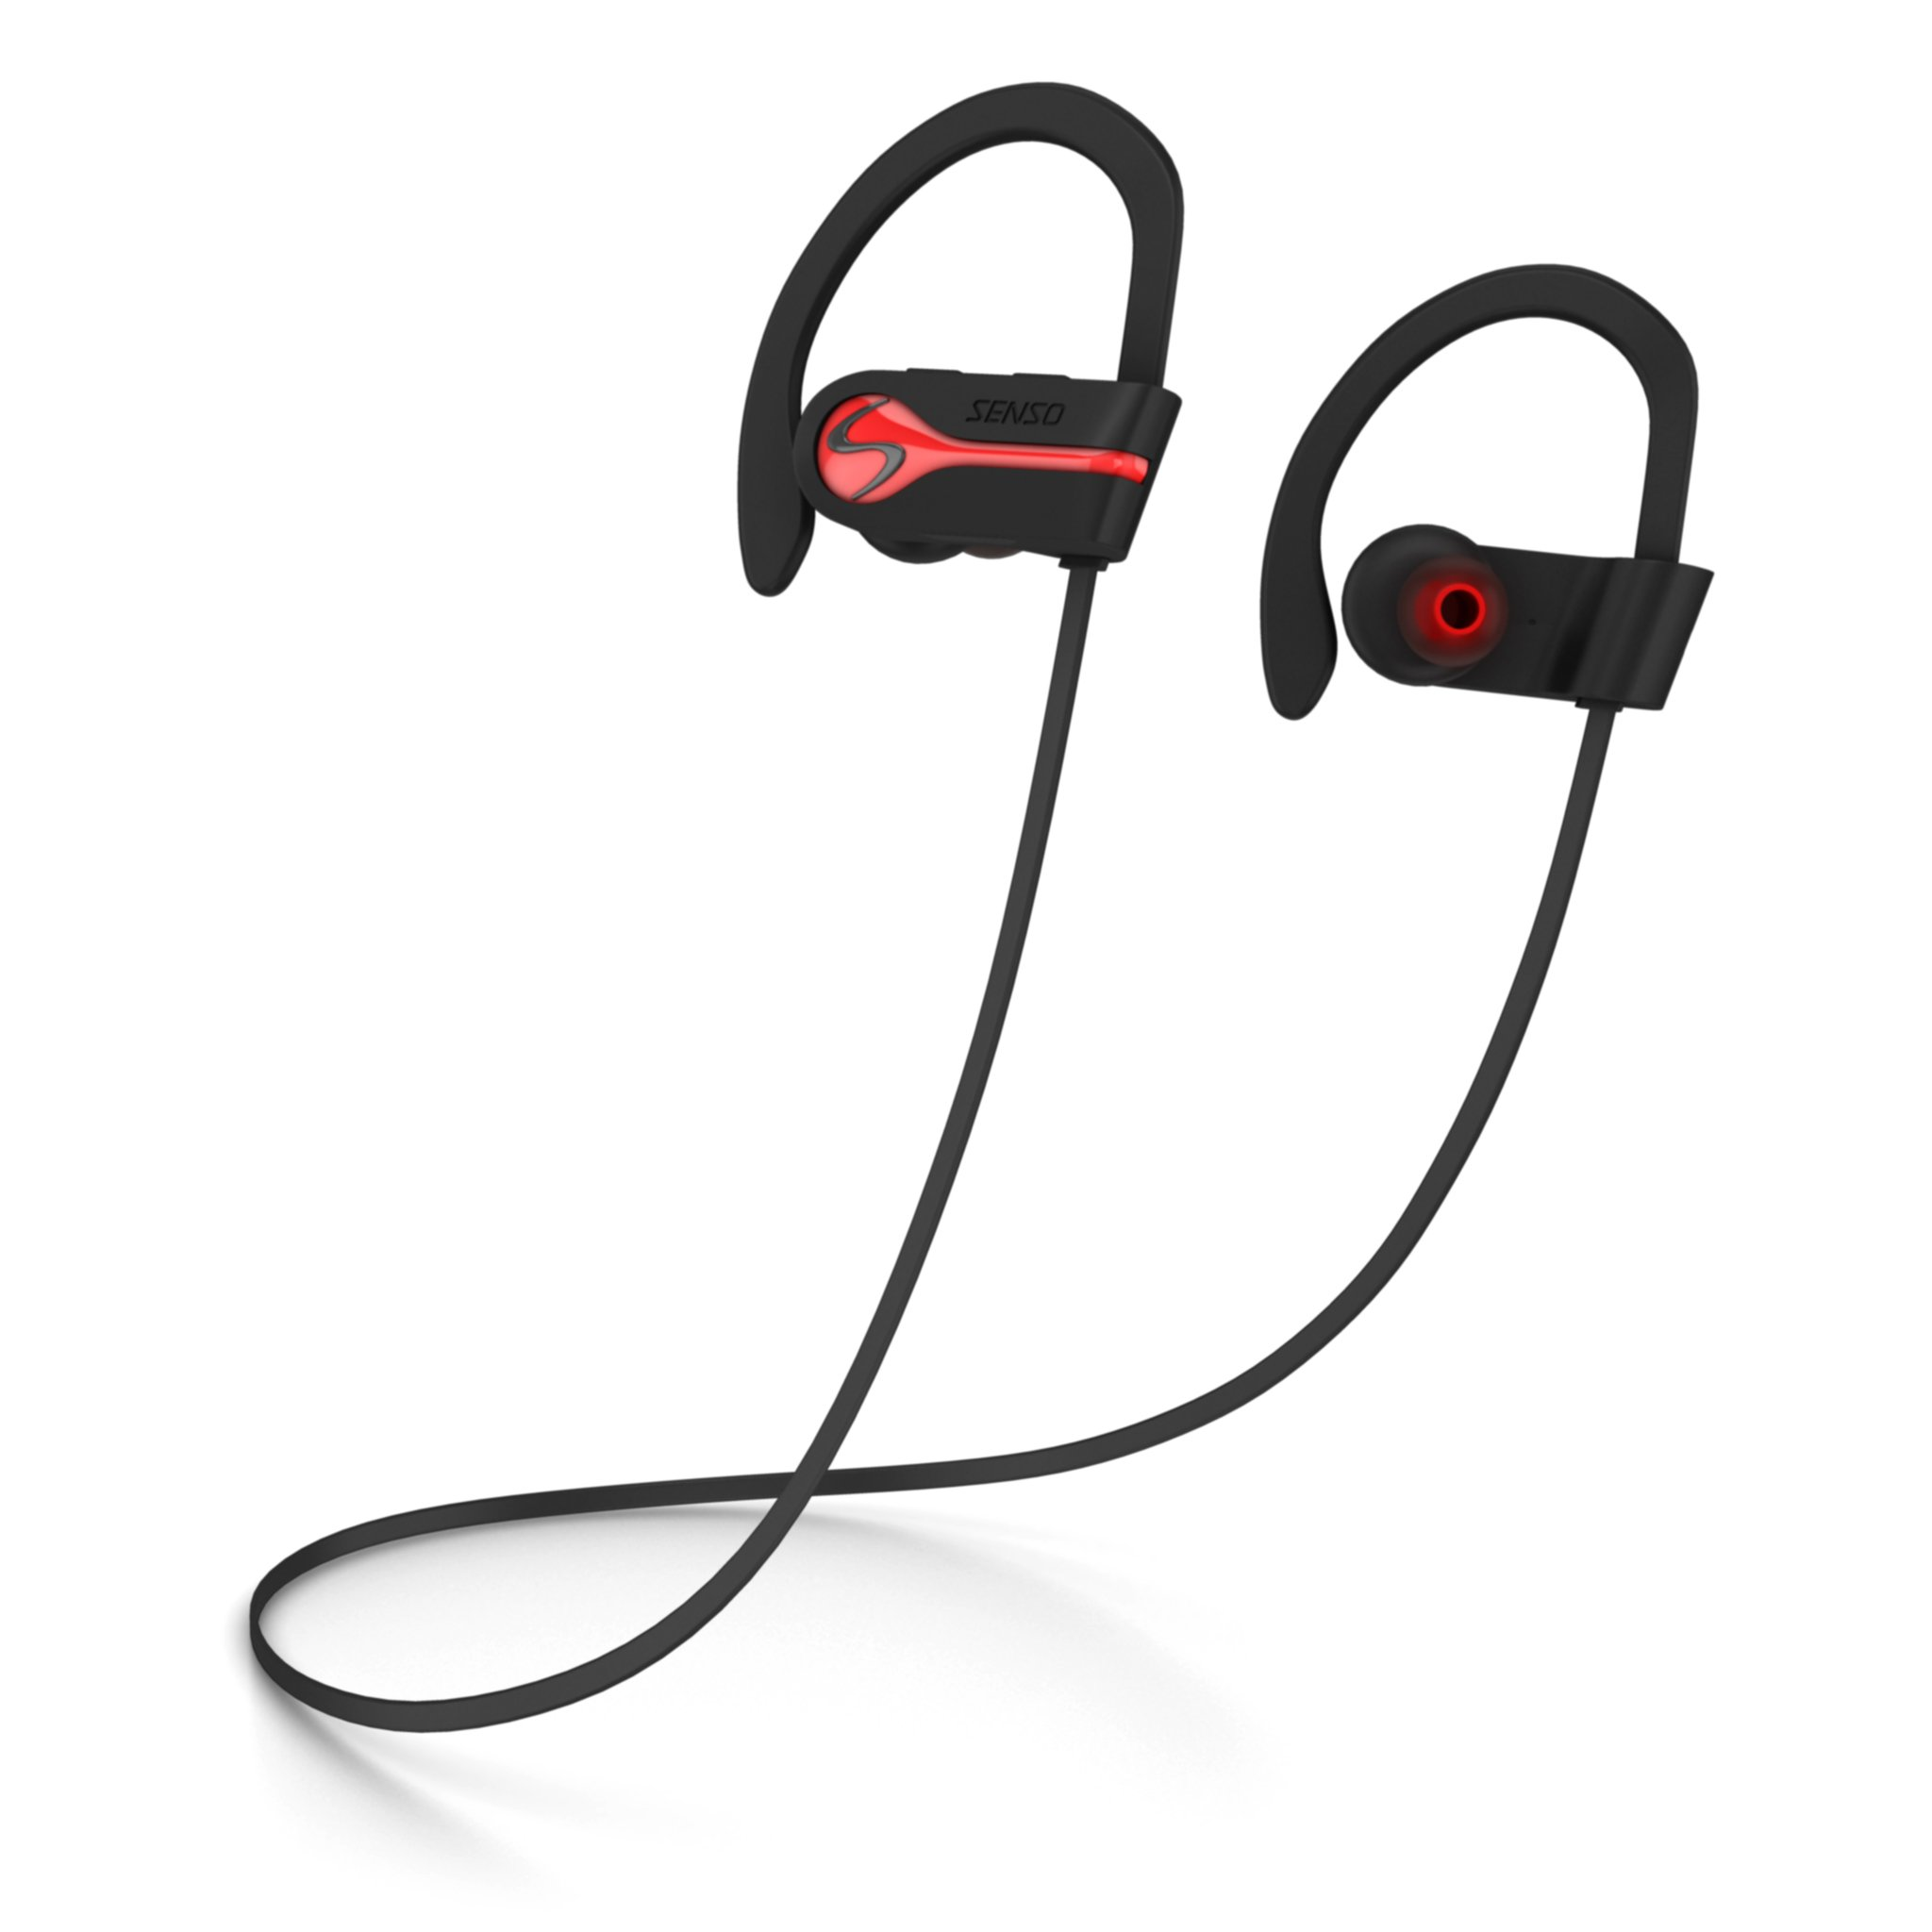 Amazon Com Senso Bluetooth Wireless Headphones Best Sports Earphones W Mic Ipx7 Waterproof Hd Stereo Sweatproof Earbuds For Gym Running Workout 8 Hour Battery Noise Cancelling Headsets Hifi Cordless Headphones Electronics